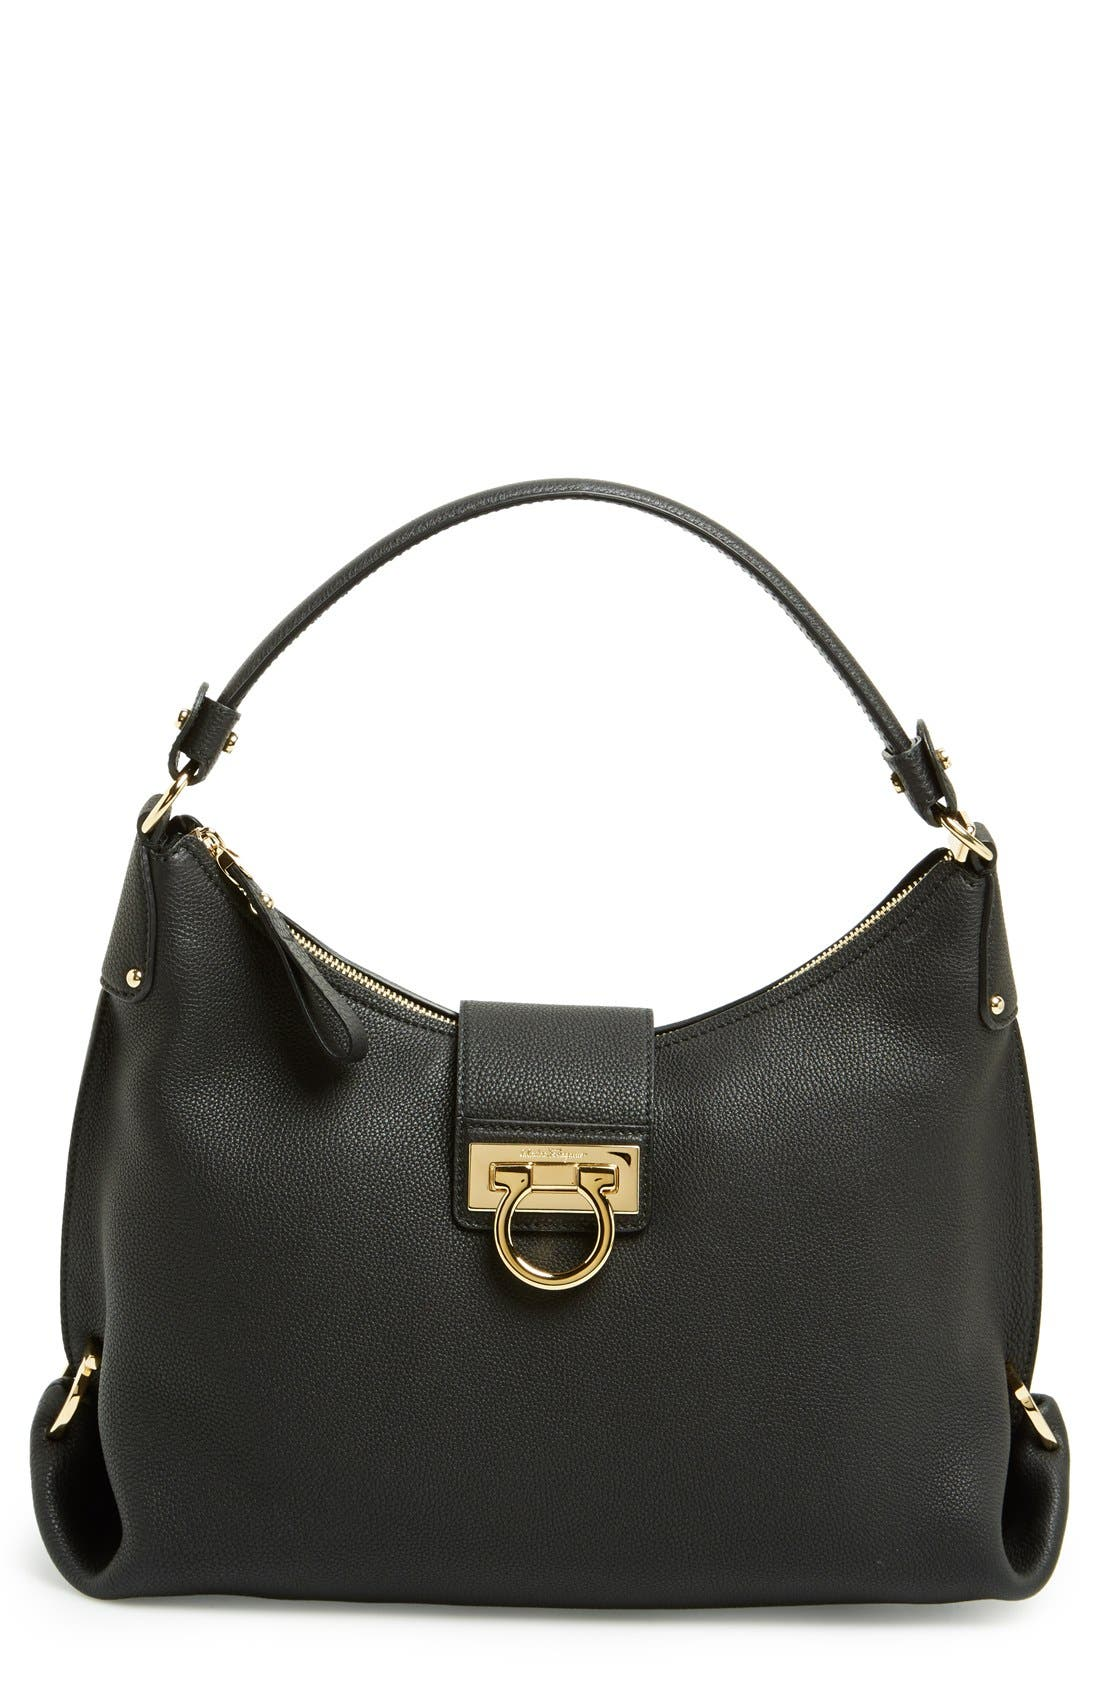 Main Image - Salvatore Ferragamo Leather Hobo